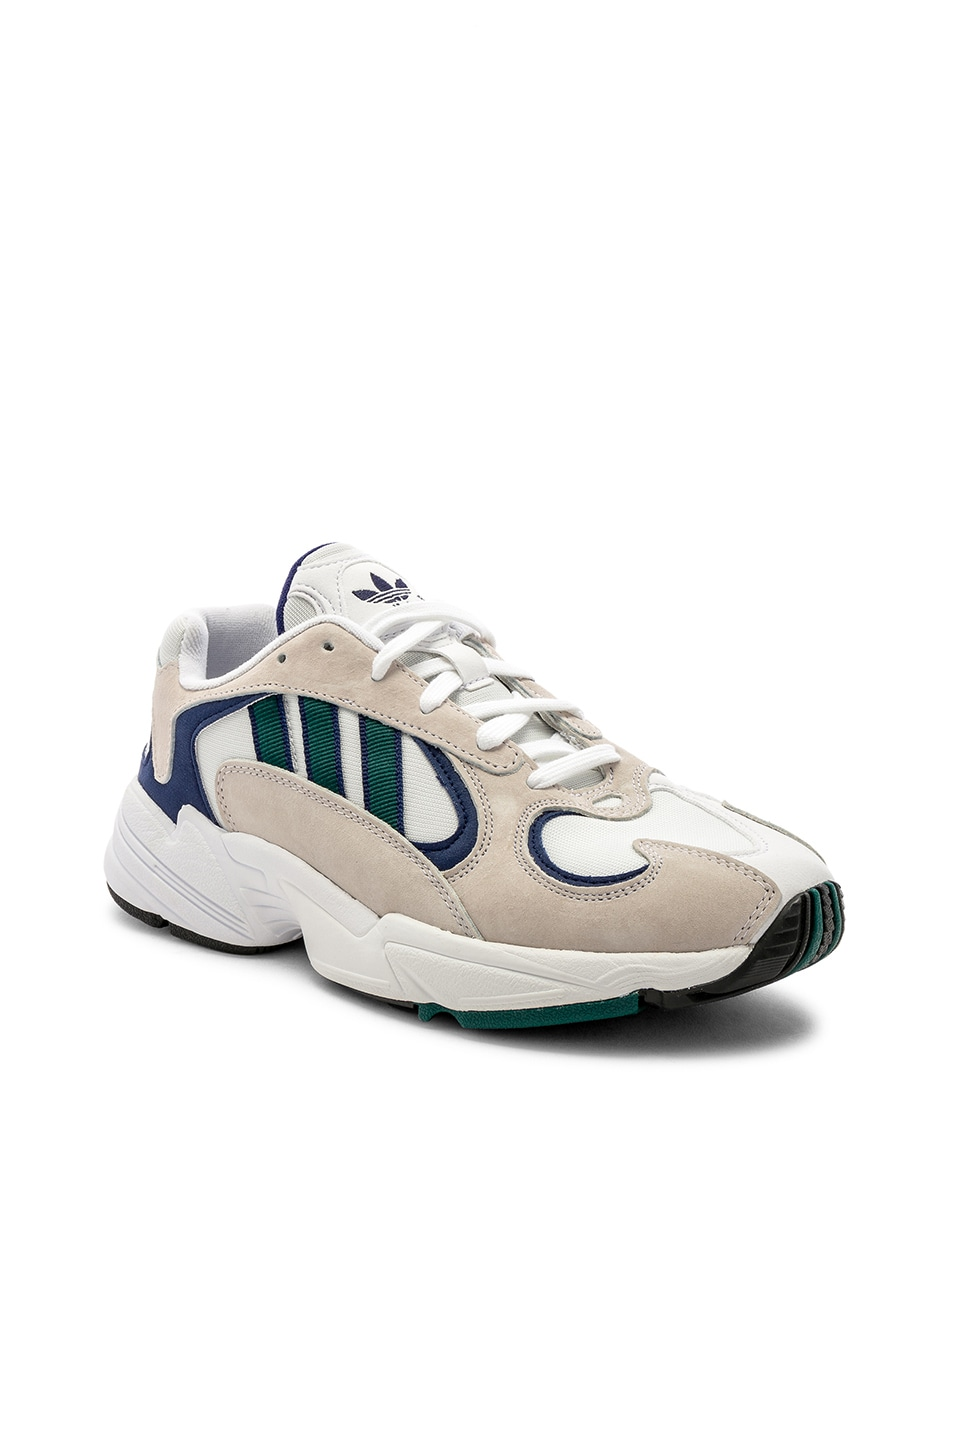 Image 2 of adidas Originals Yung-1 in White & Noble Green & Dark Blue